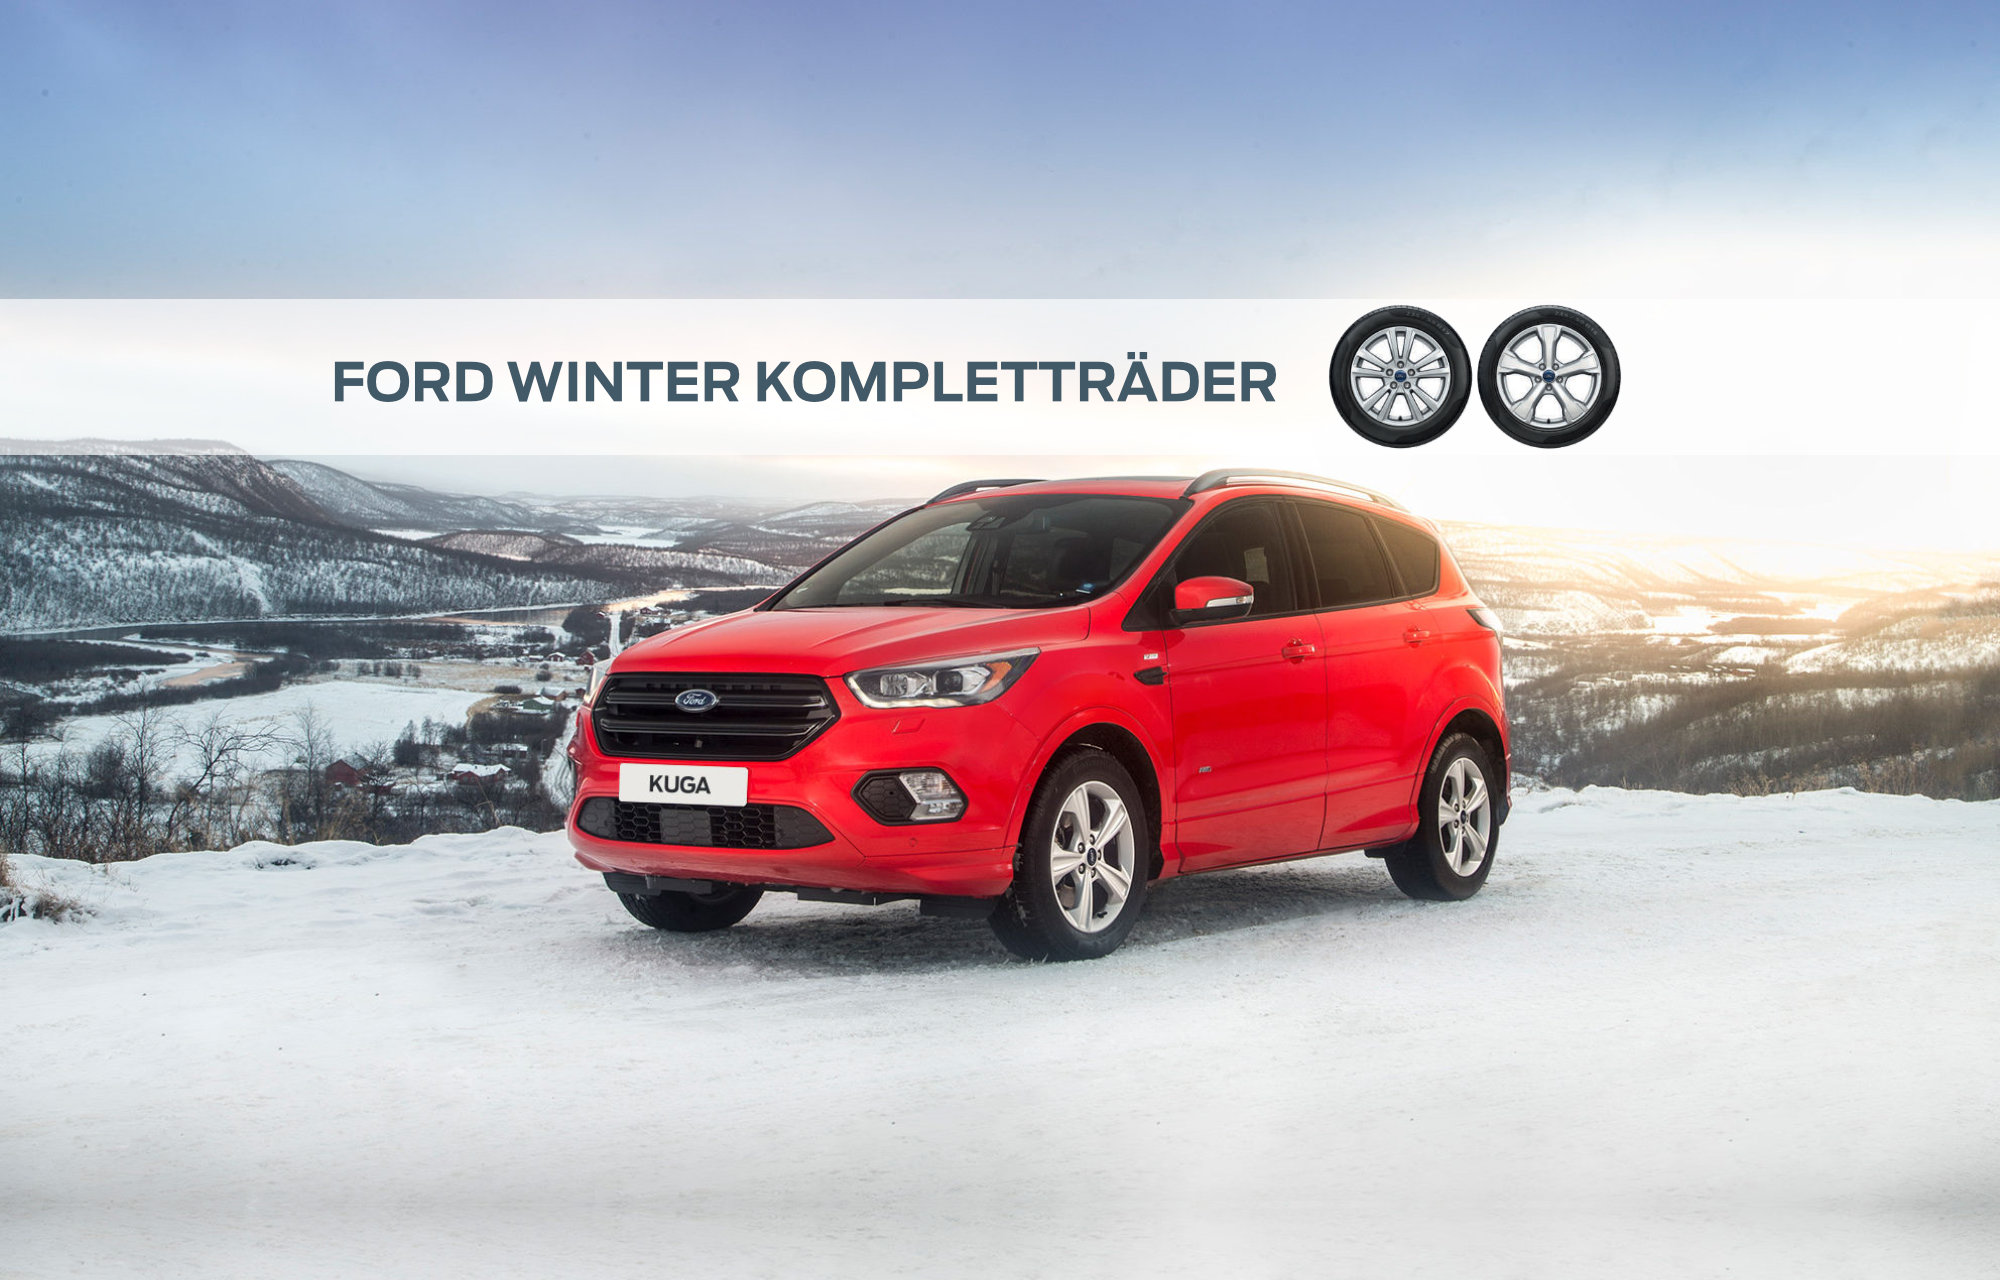 Ford Winter Kompletträder